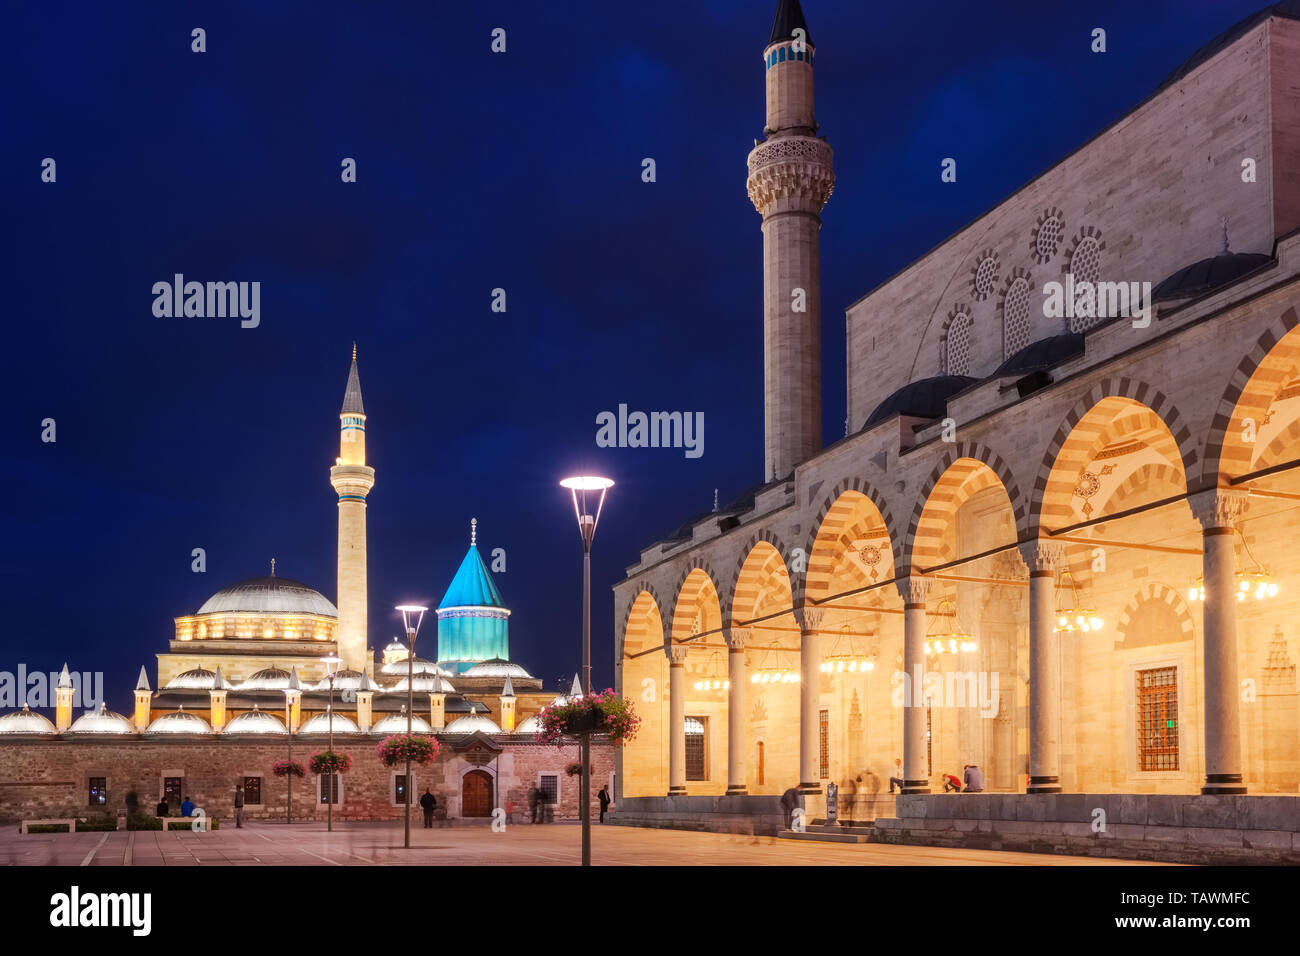 The central square of the old town of Konya at night, Turkey Stock Photo